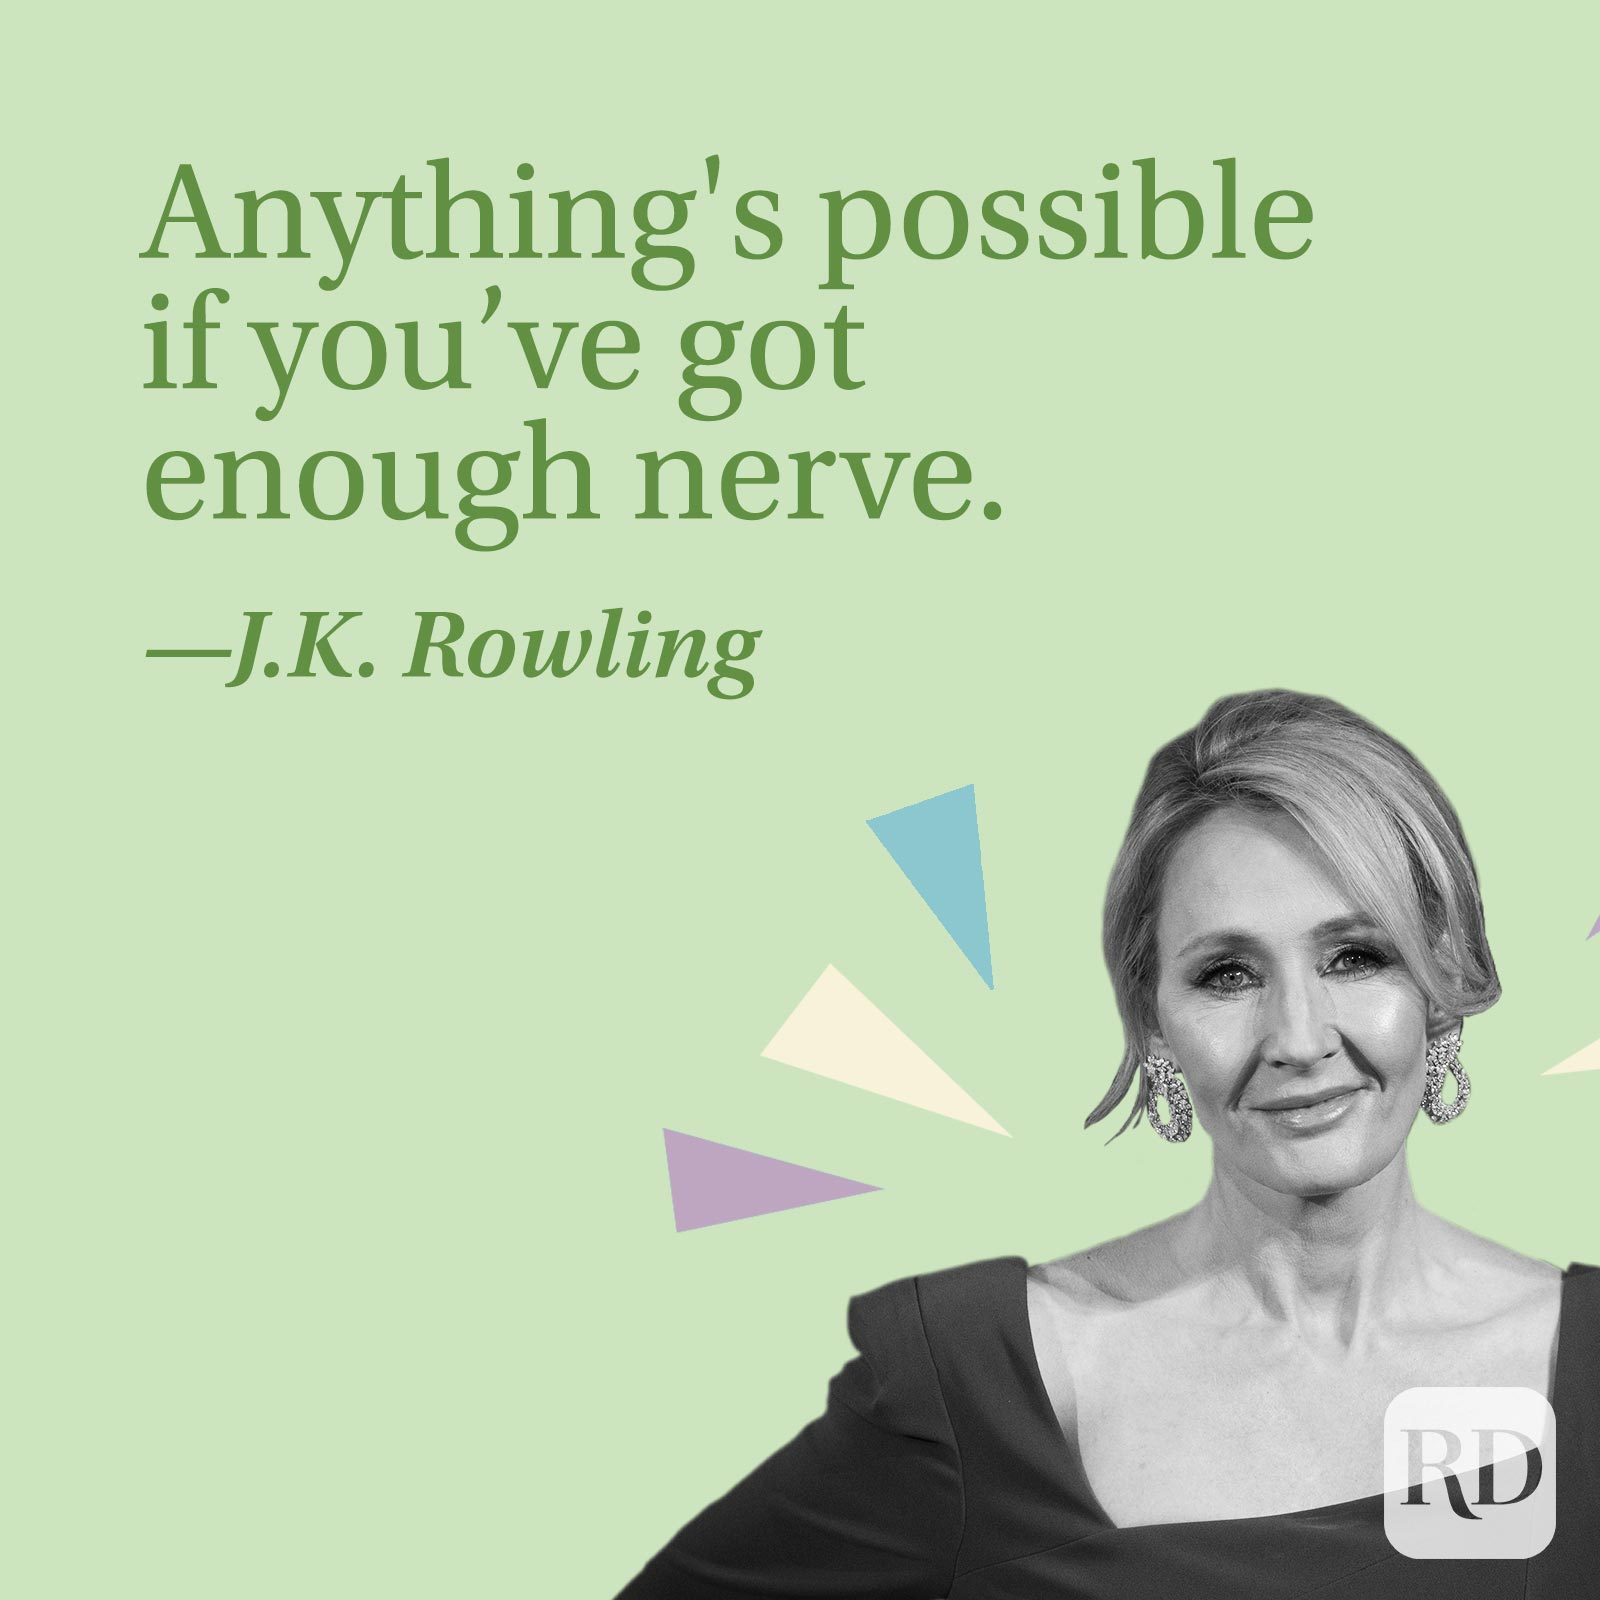 Anything's possible if you've got enough nerve.—J.K. Rowling